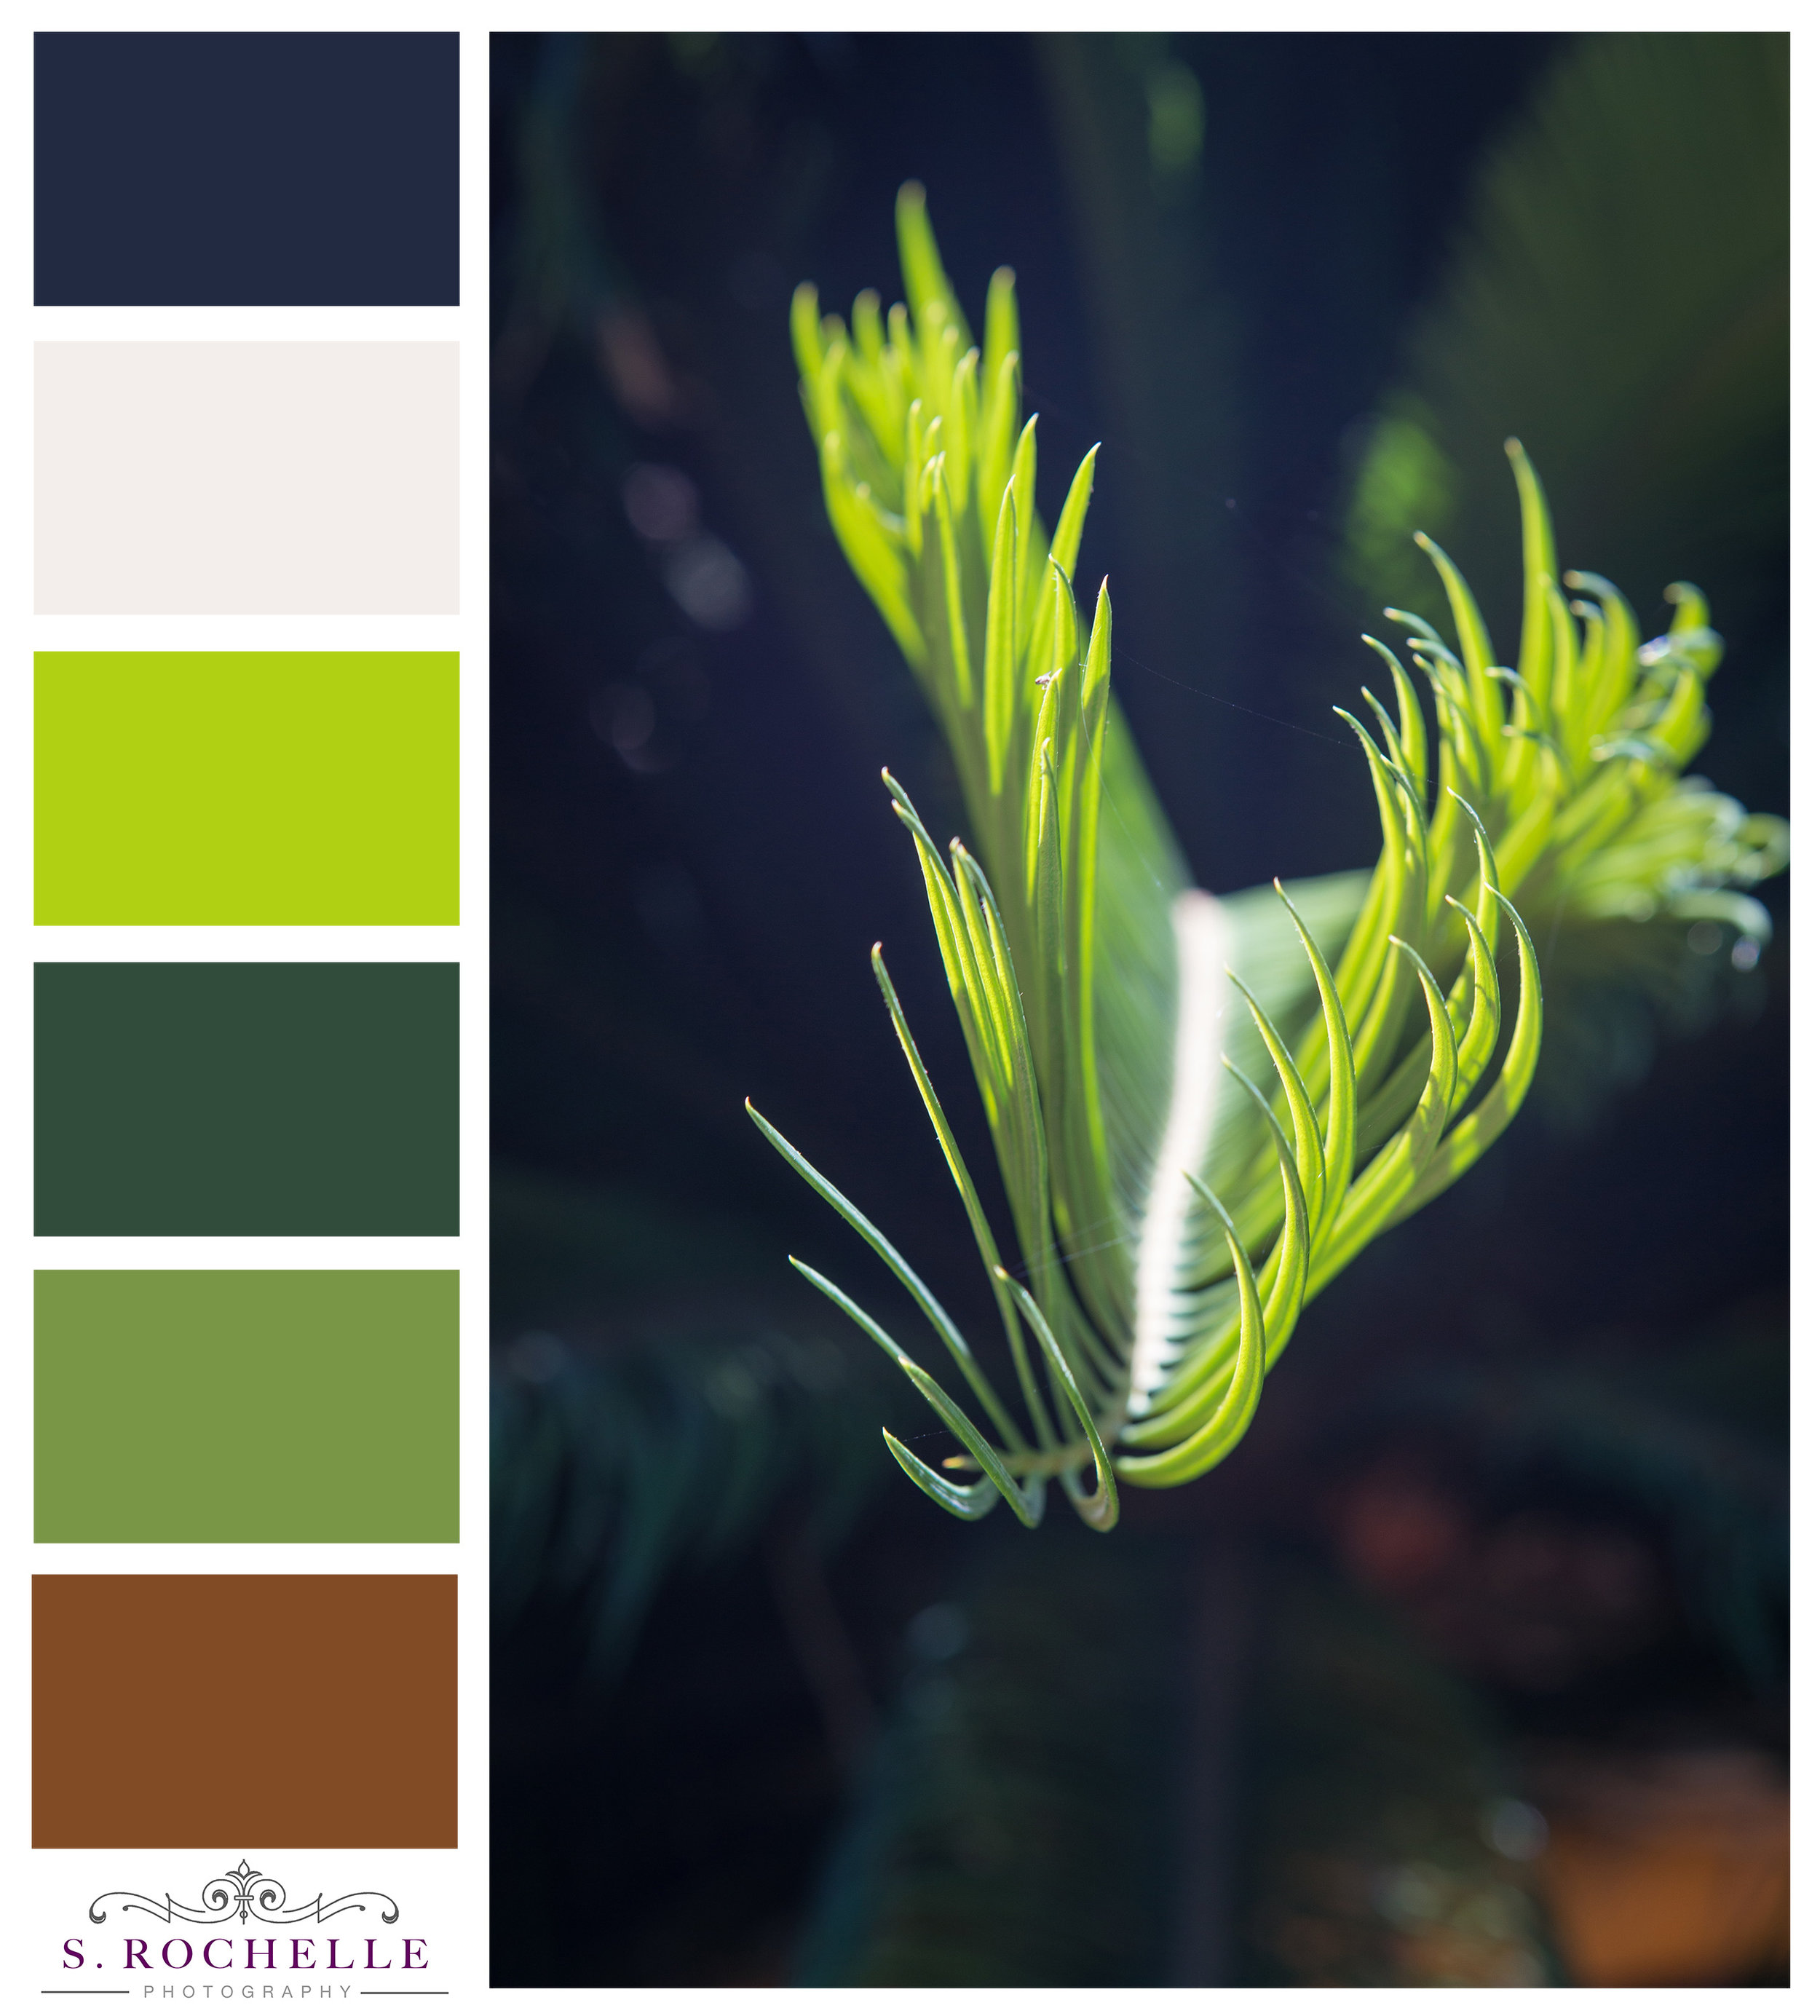 Sunlit_Greenery_S_Rochelle_Photography_20150829_IMG_1950_ColorPalette.jpg